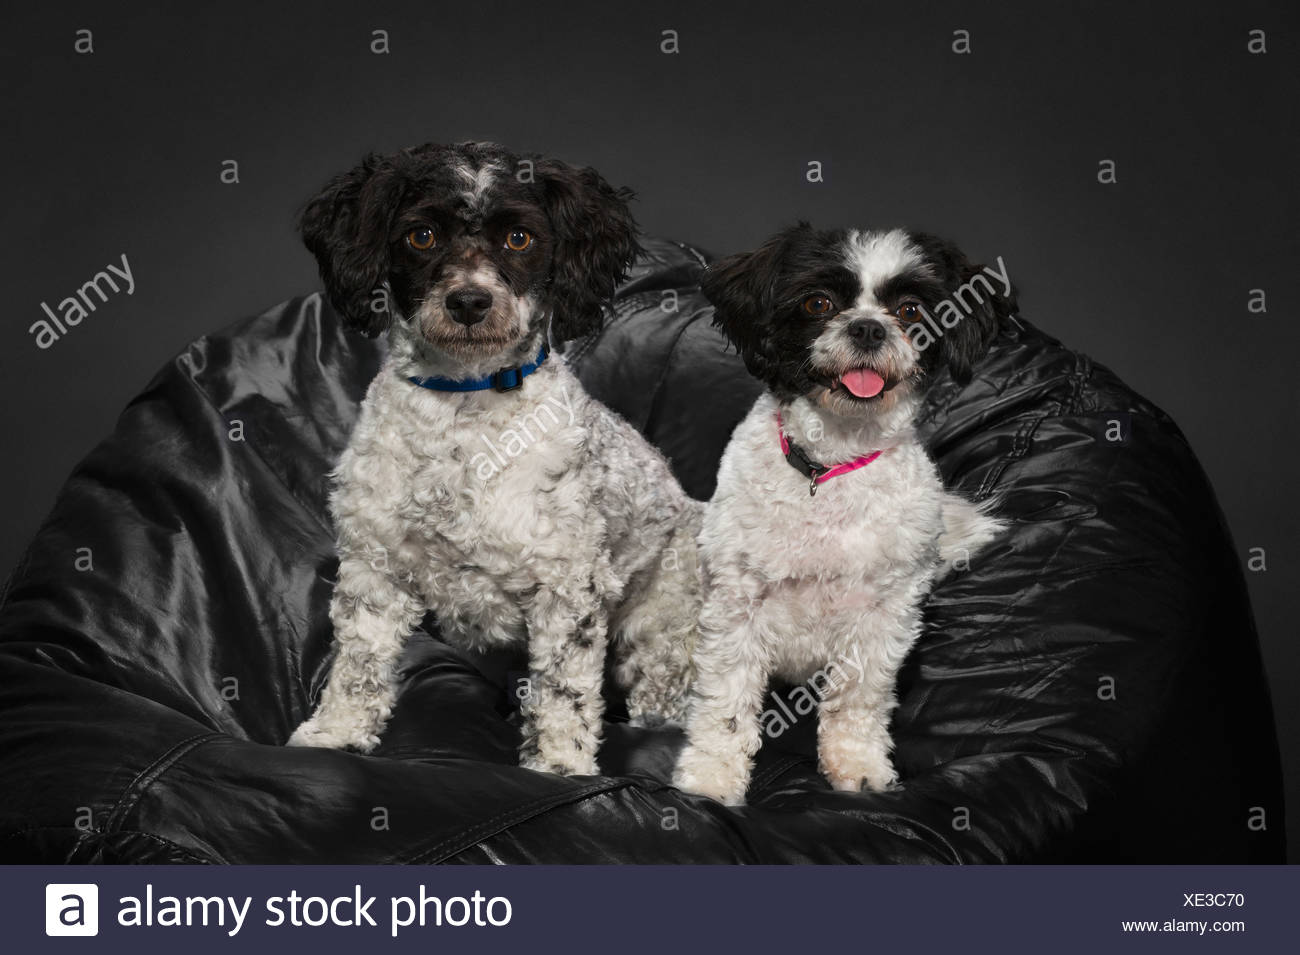 A Bichon-Shih Tzu And A Havanese Dog On A Black Beanbag - Stock Image